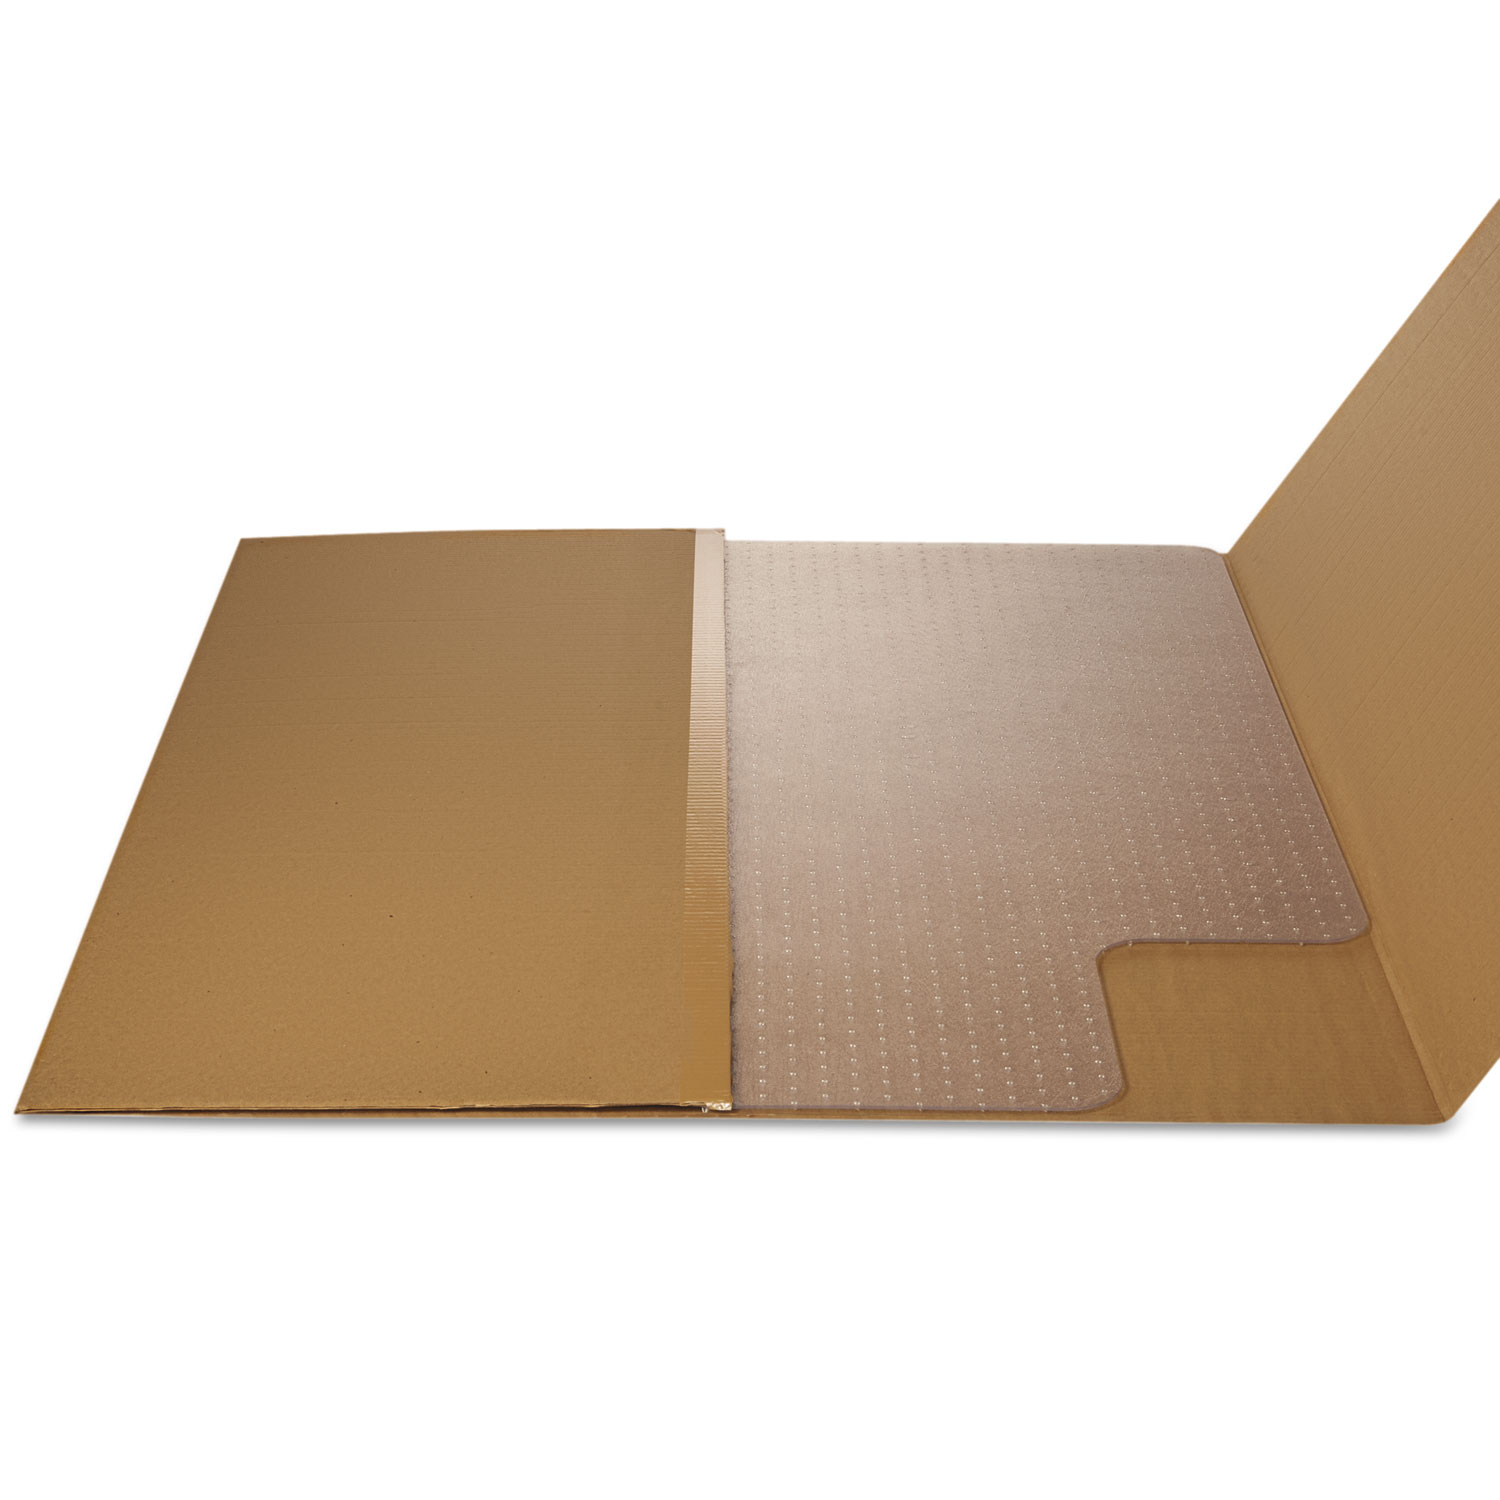 office chair mats carpet staples parts word whizzle pop economat occasional use mat for low pile by deflecto® defcm11112 - ontimesupplies.com